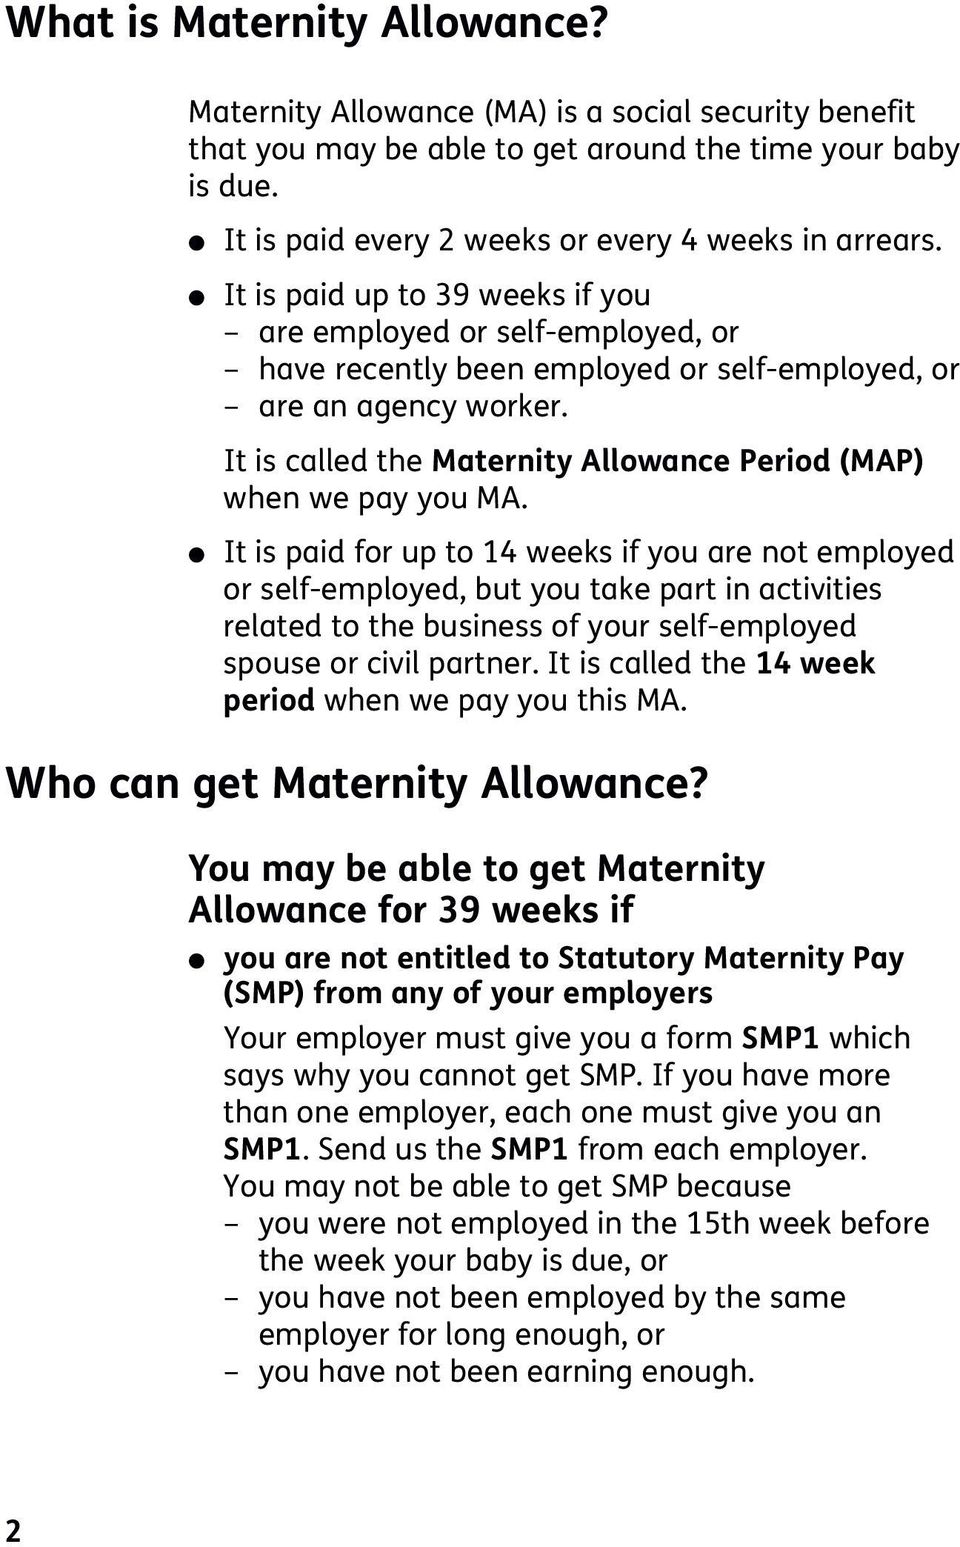 It is called the Maternity Allowance Period (MAP) when we pay you MA.